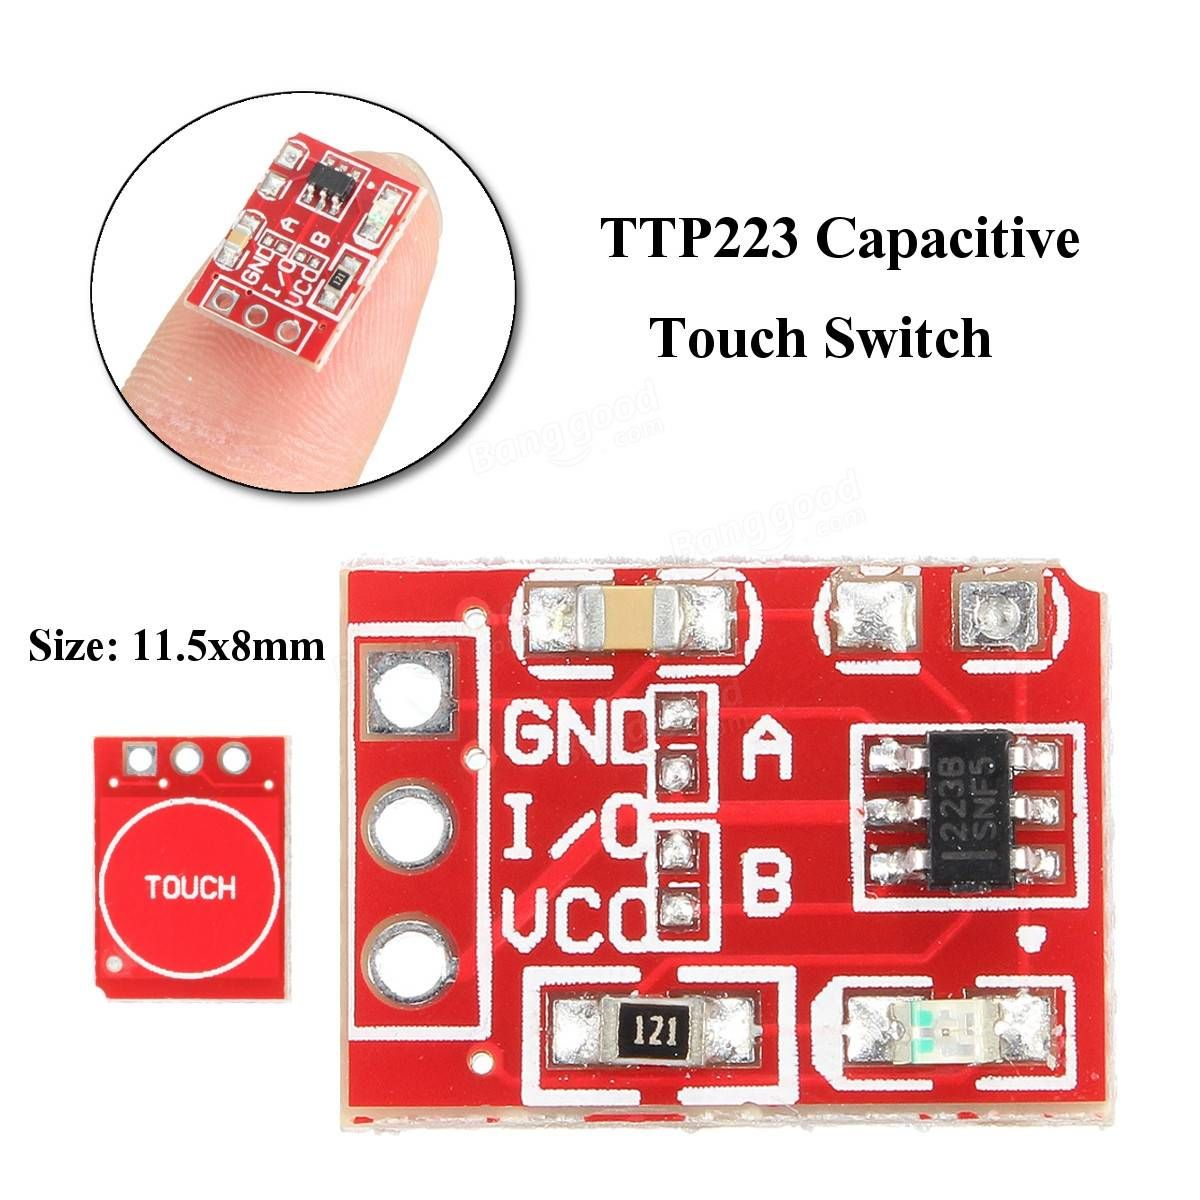 10pcs 25 55v Ttp223 Capacitive Touch Switch Button Self Lock Circuit Diagram Module For Arduino